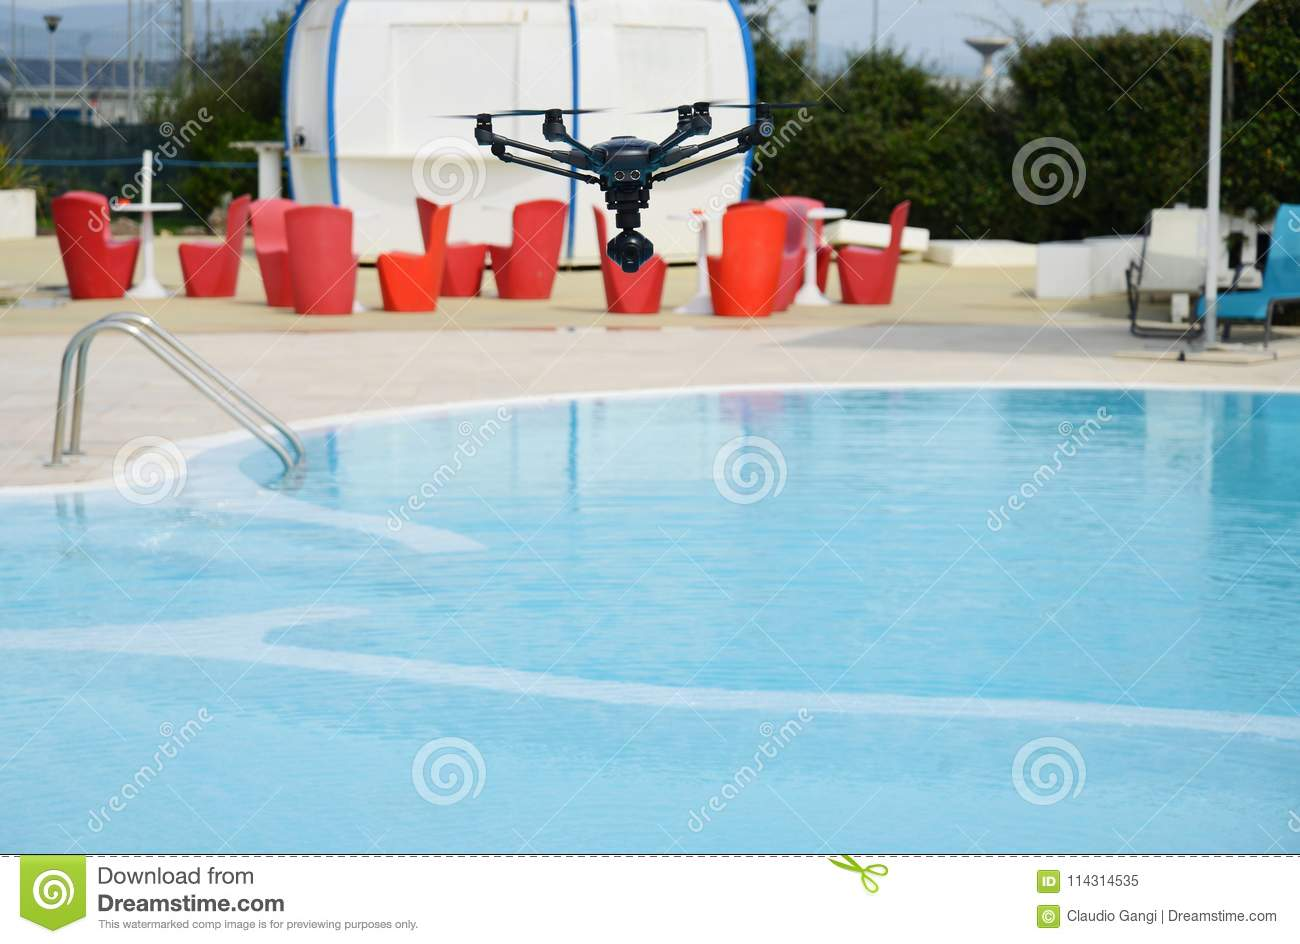 Drone hovering over swimming pool